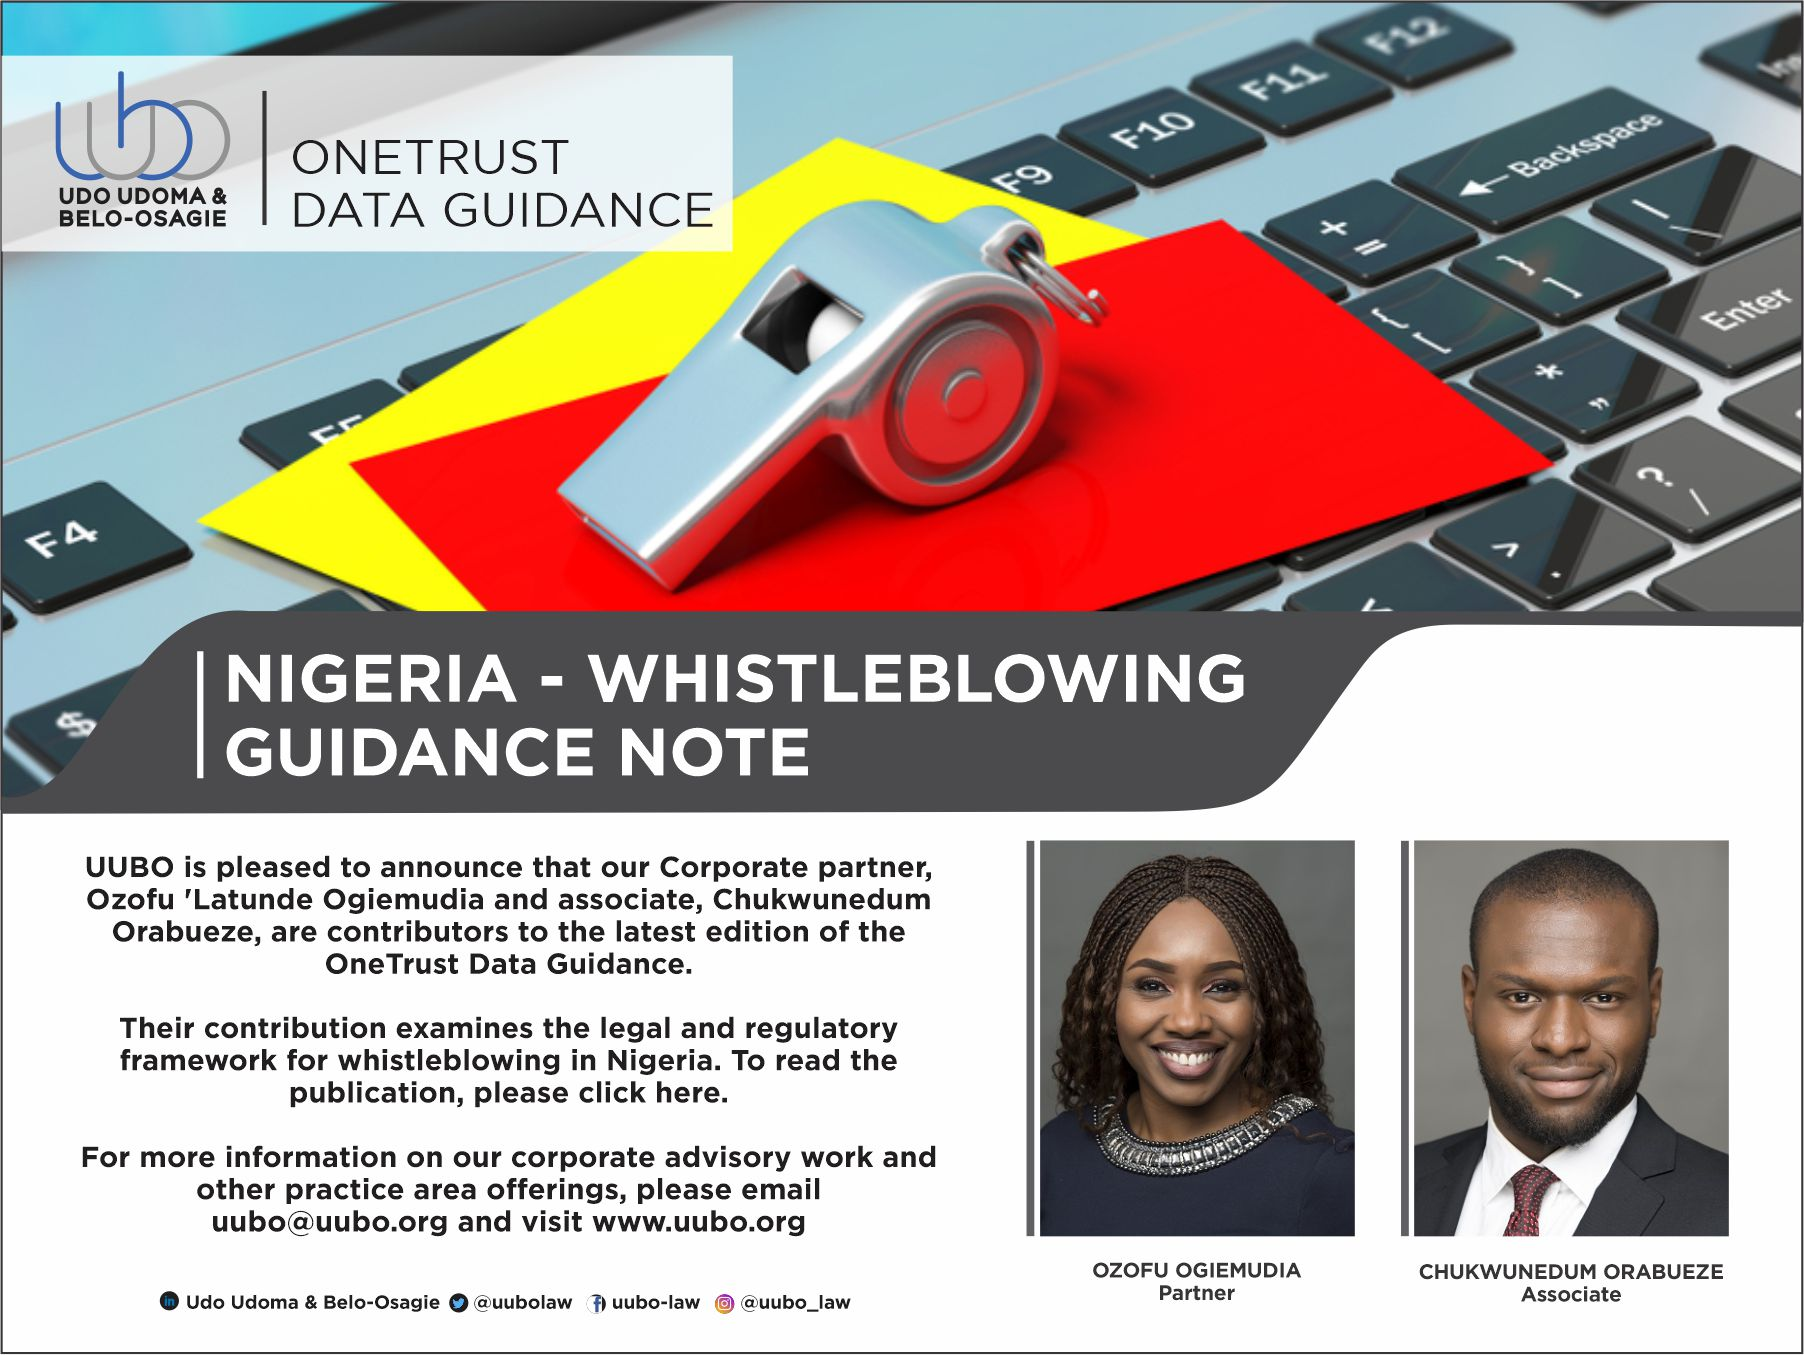 NIGERIA - WHISTLEBLOWING GUIDANCE NOTE